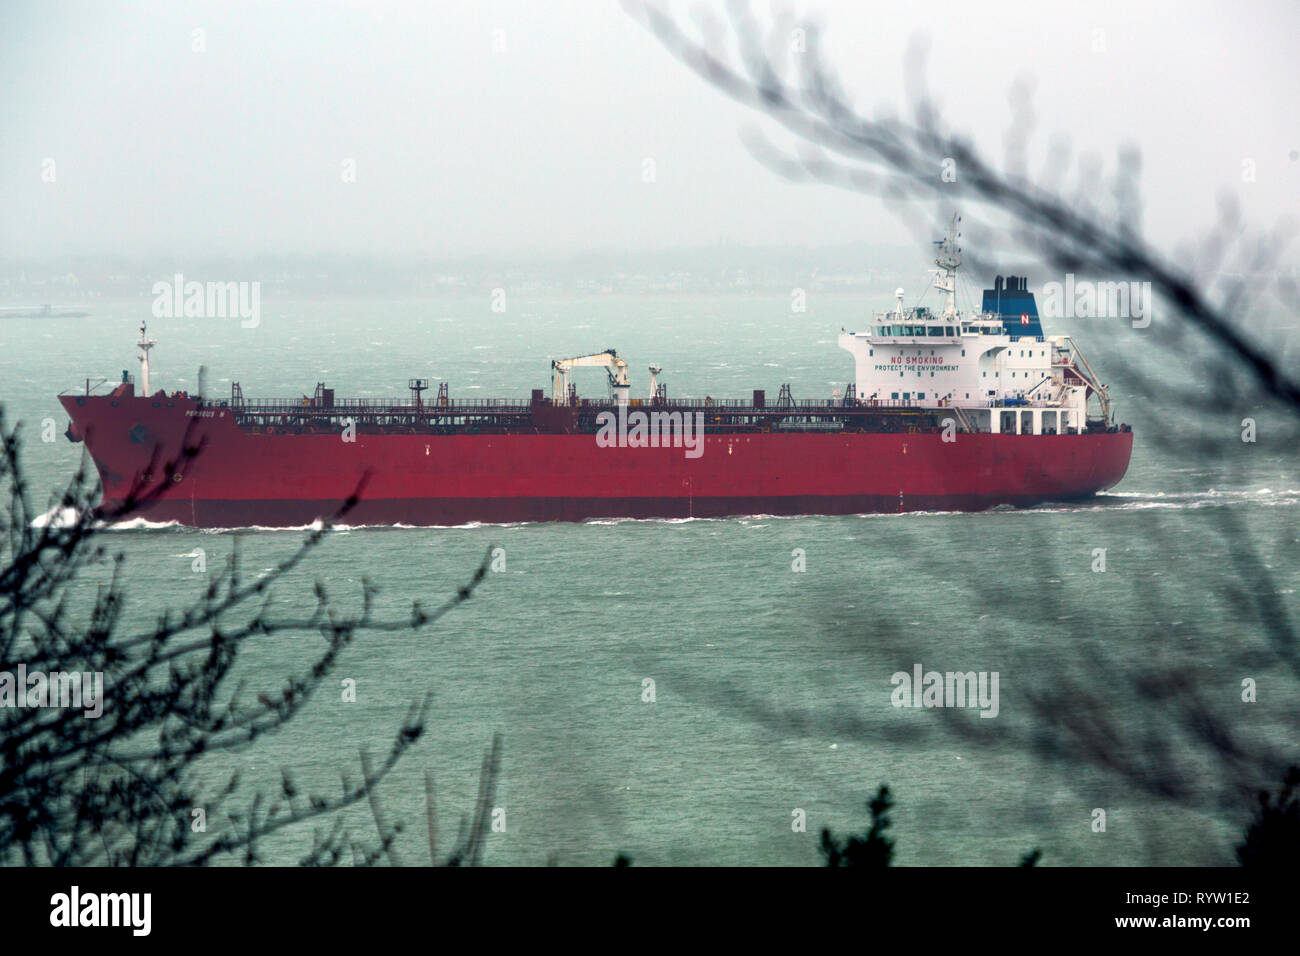 Oil,Chemical,Tanker,Perseus N, Registered, Monrovia, The Solent, Fawley,Oil,Refinery, Southampton, Cowes, Isle of Wight, Hampshire, England, UK, - Stock Image